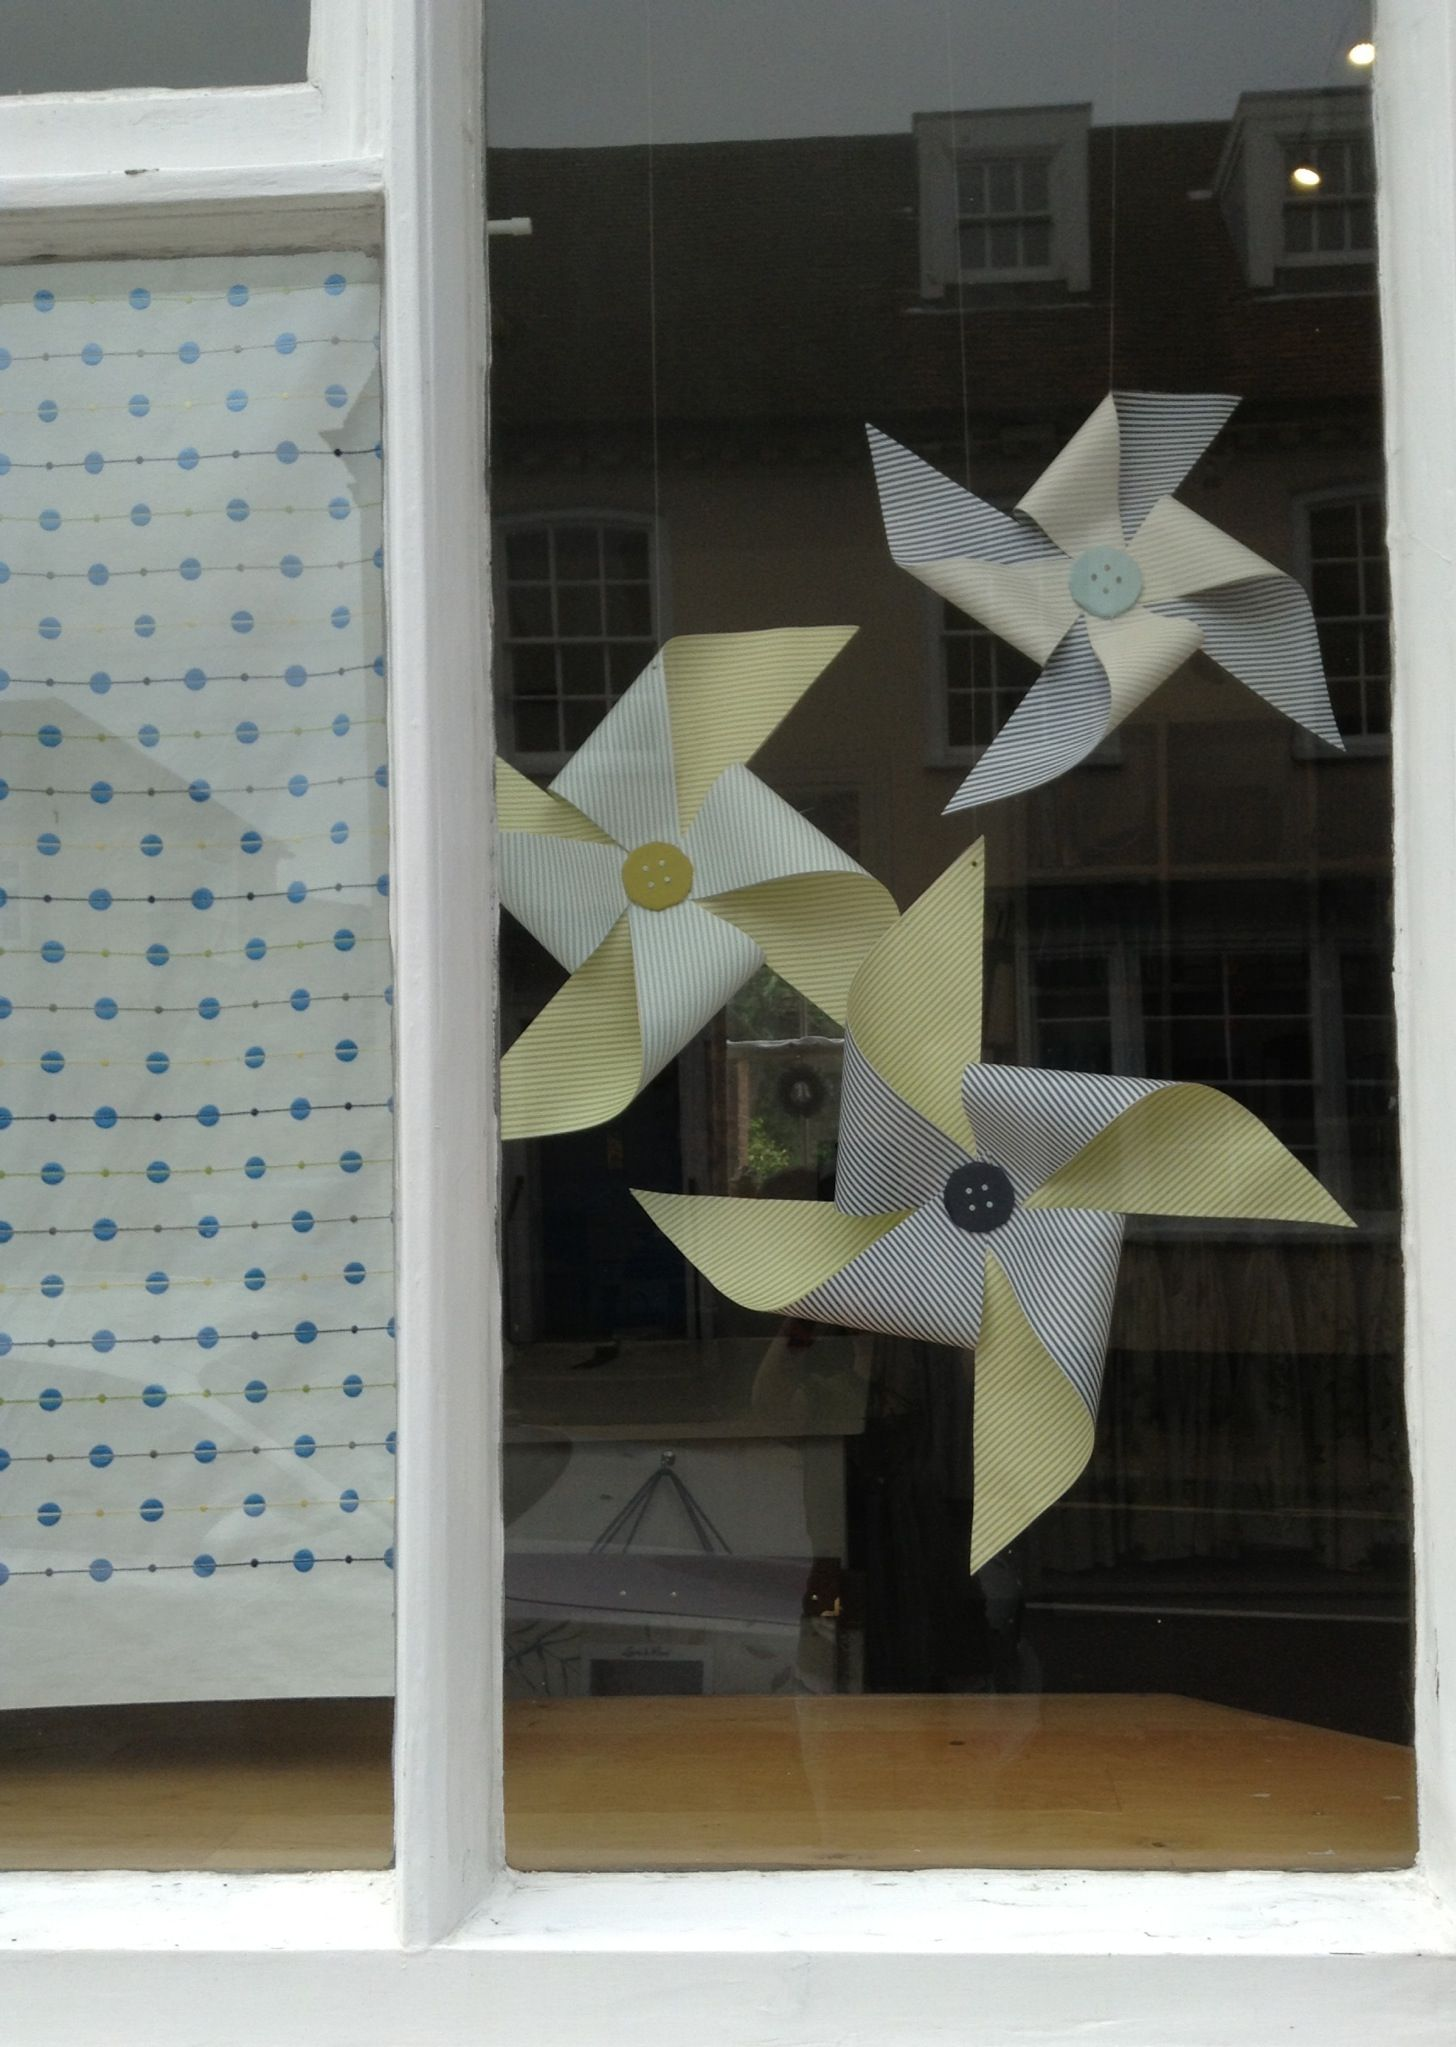 Fun Giant Wallpaper Windmills For Window Display At Sue Foster